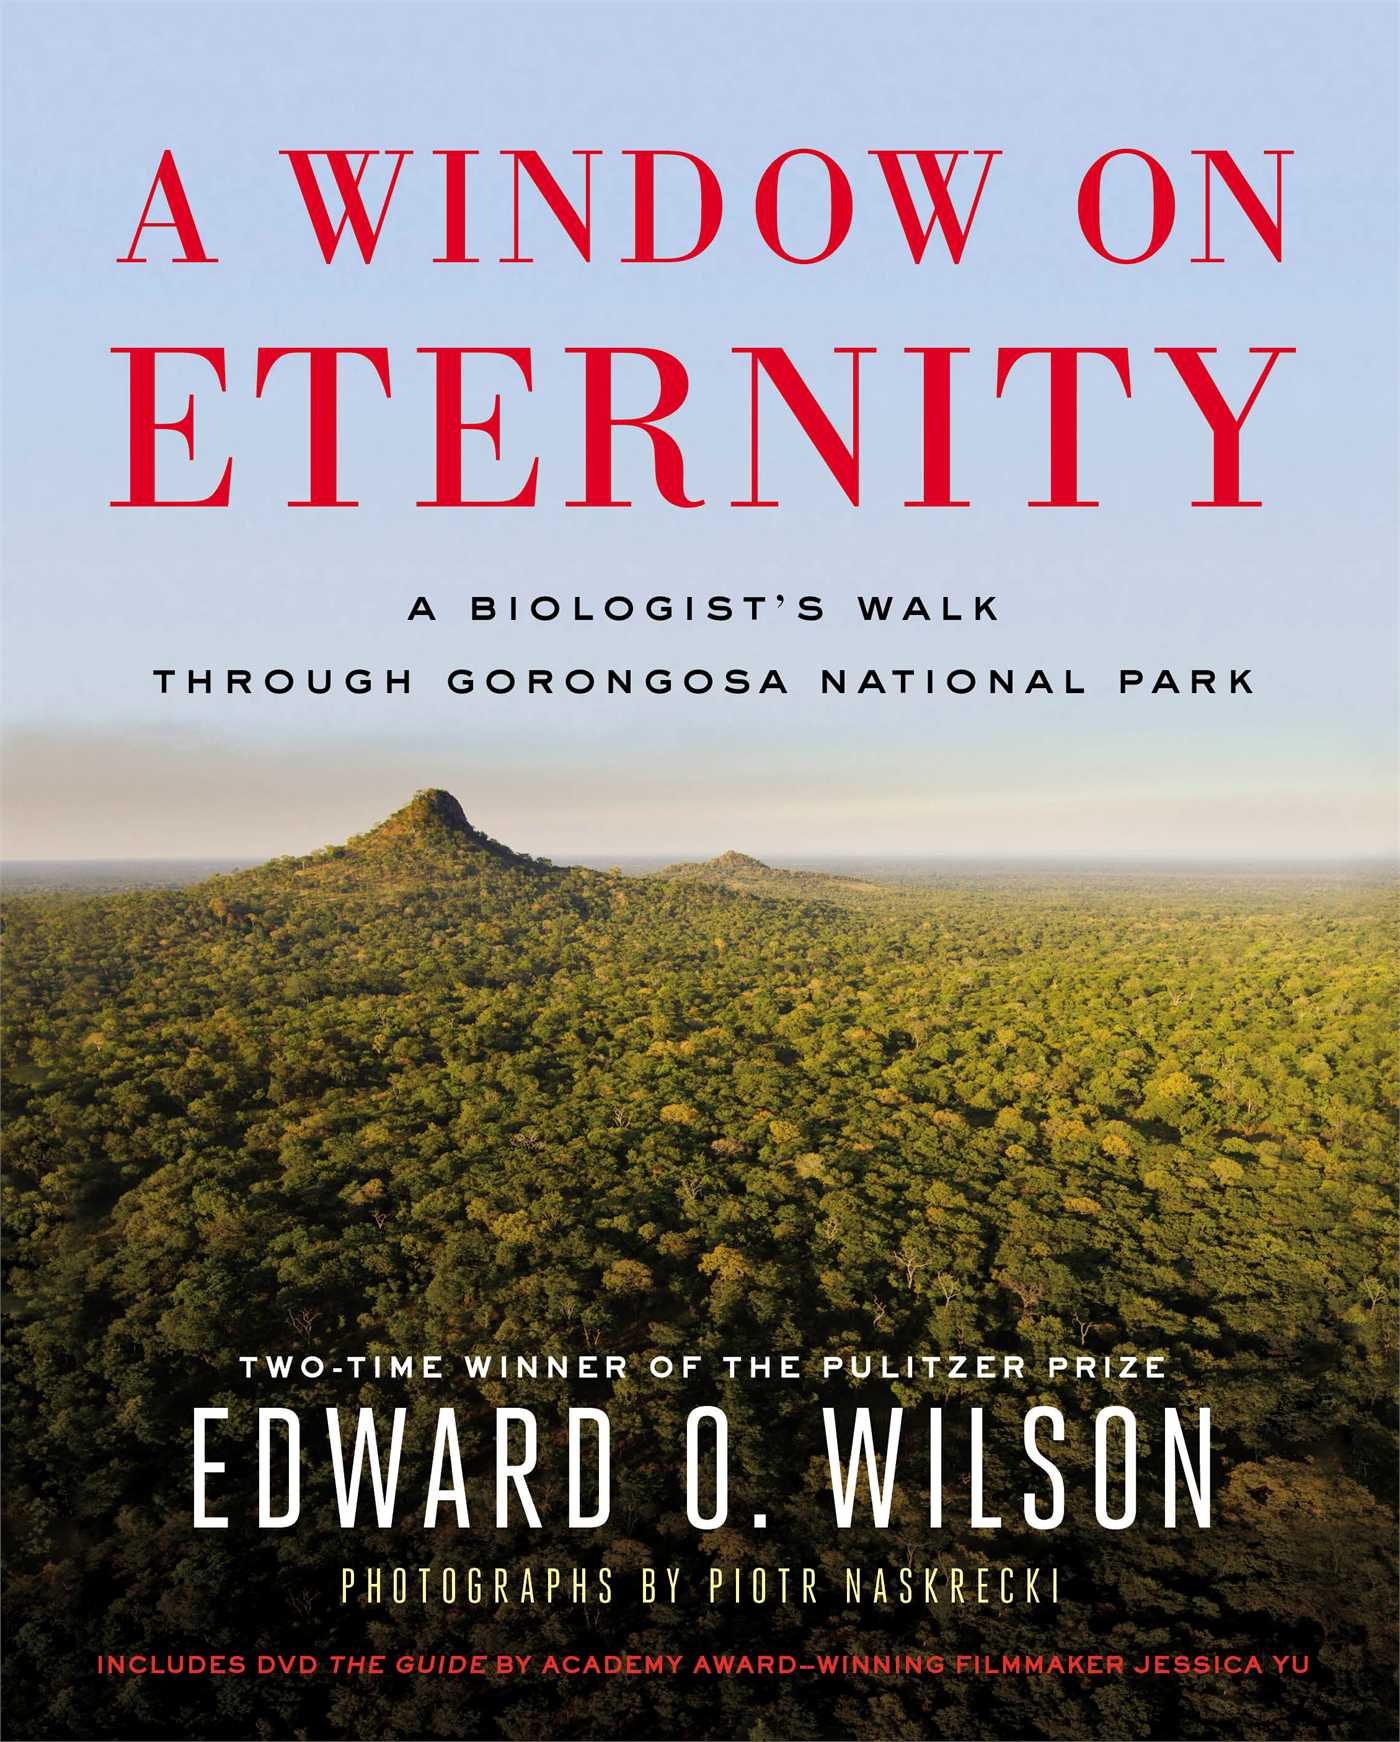 Window-on-eternity-9781476747415_hr